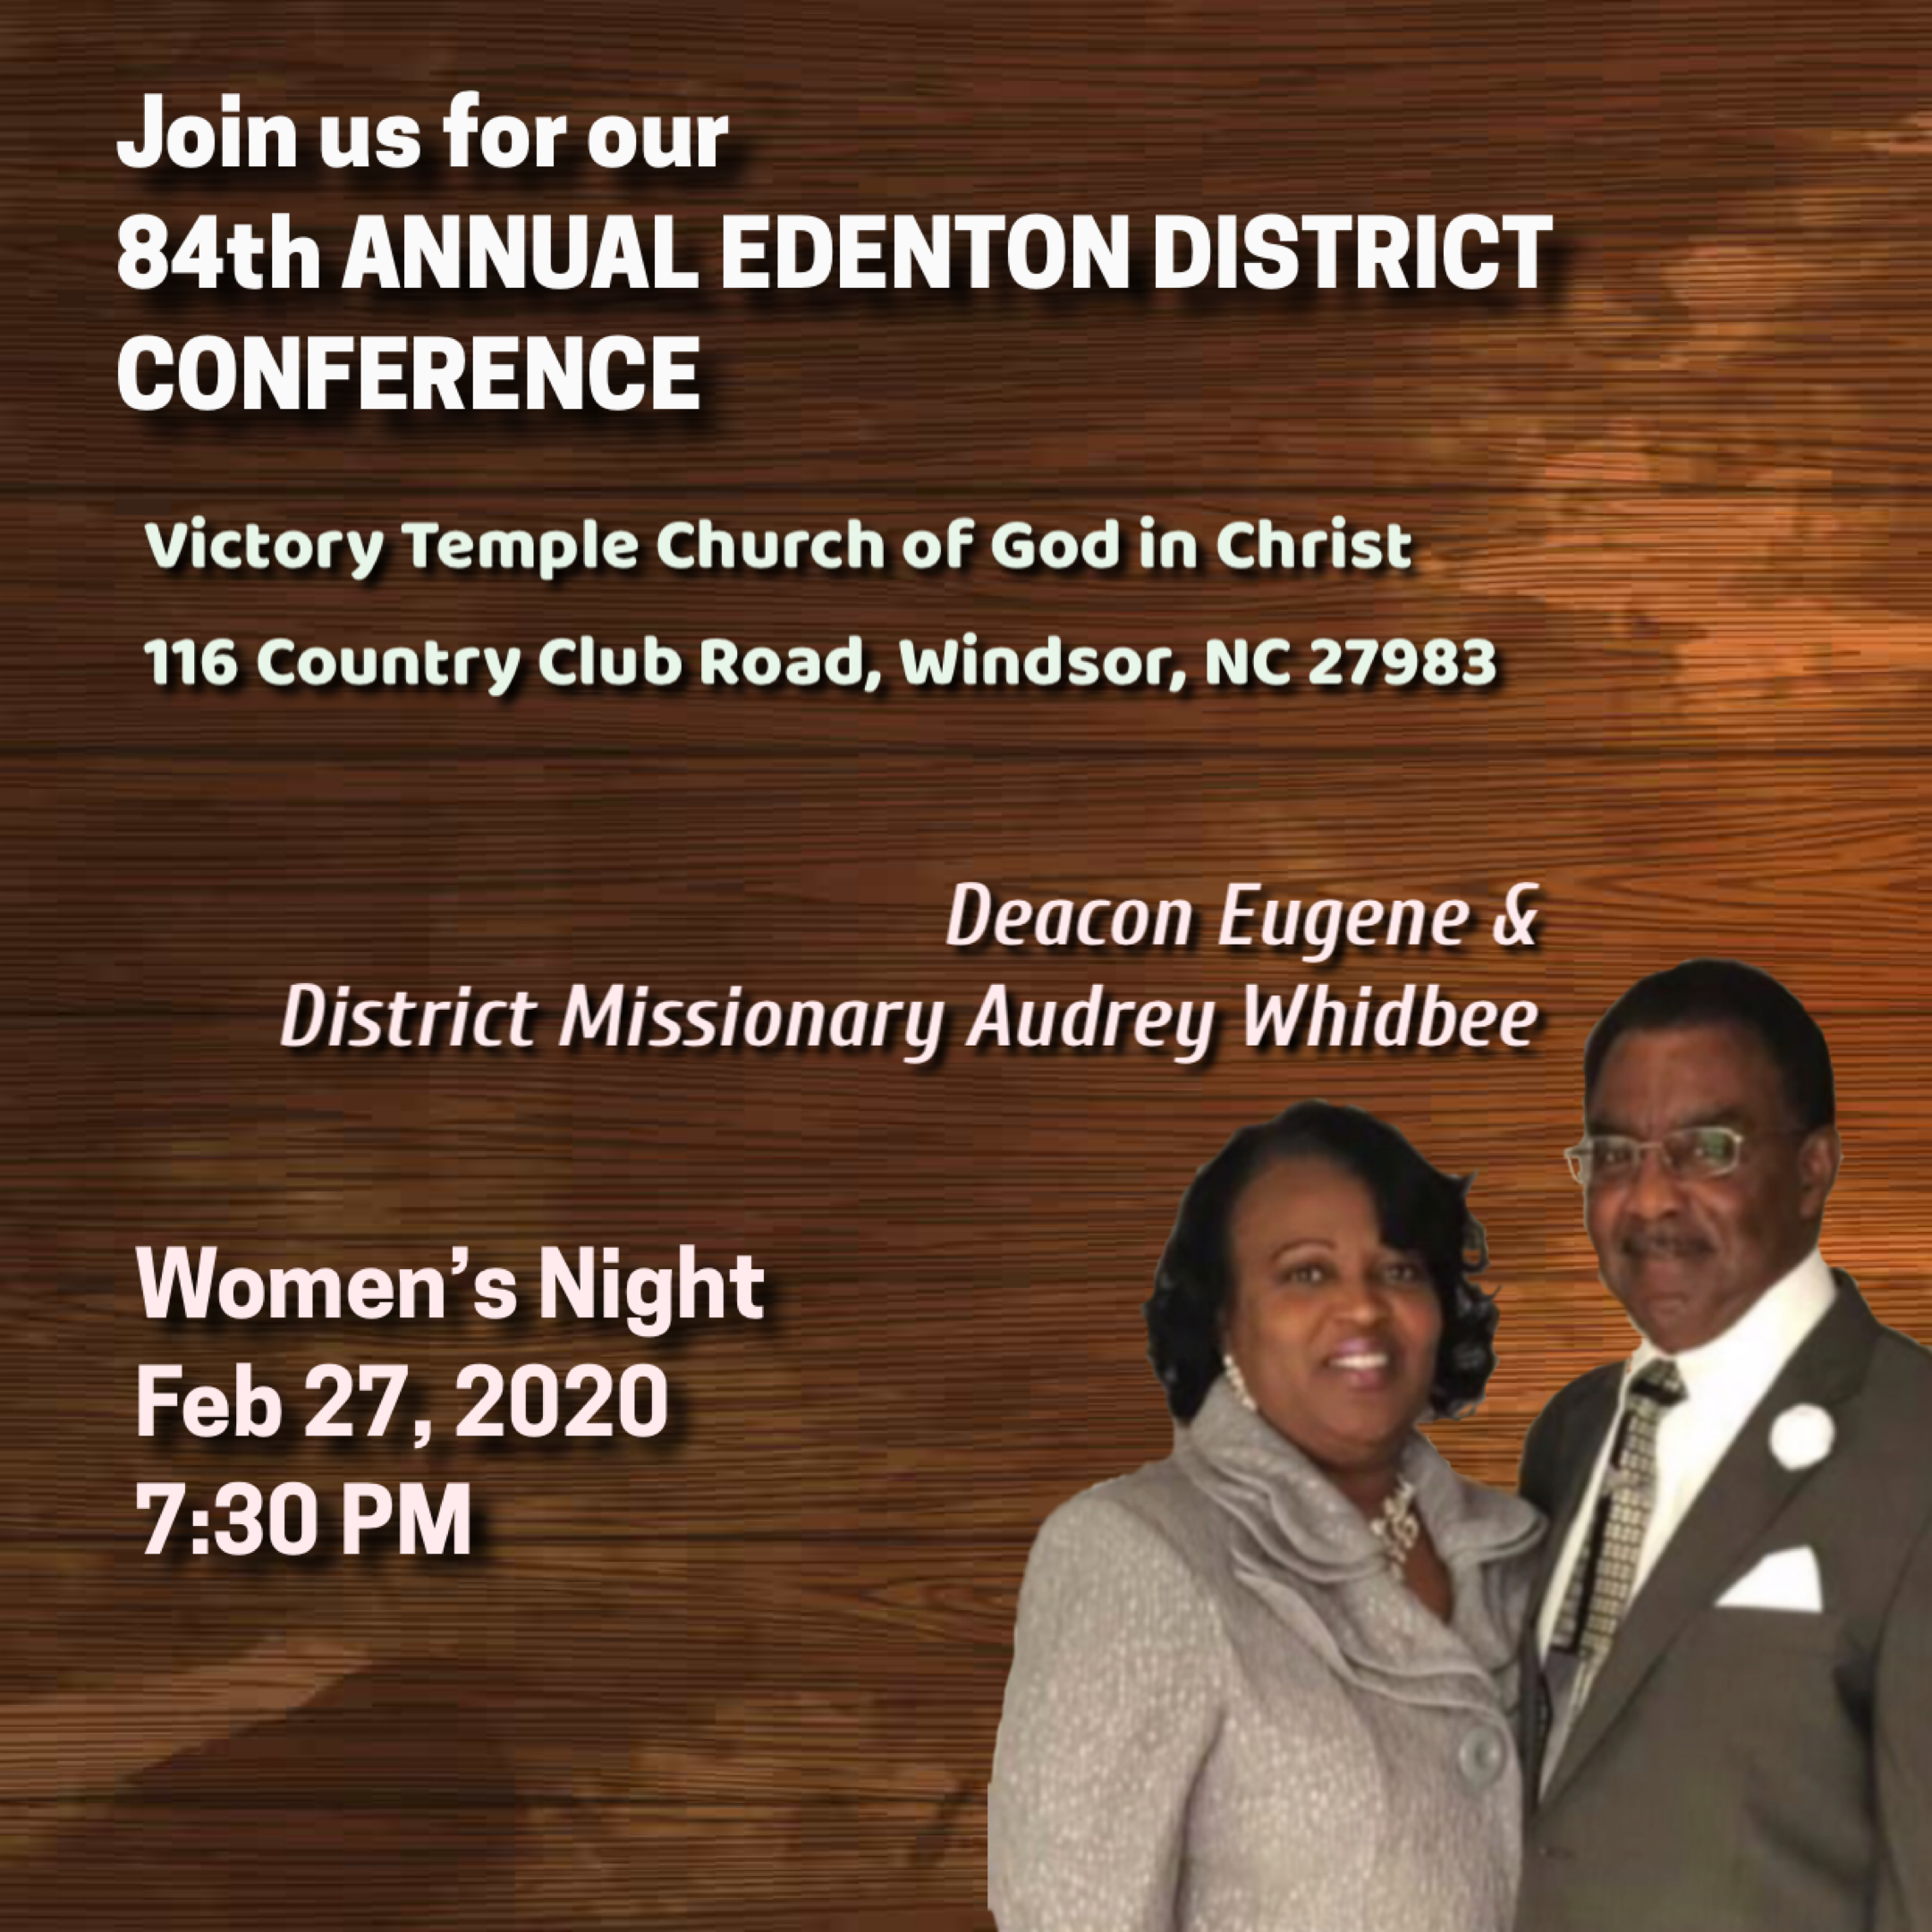 84th Annual Edenton District Conference, Thursday night, Women's night - District Missionary Audrey K Whidbee